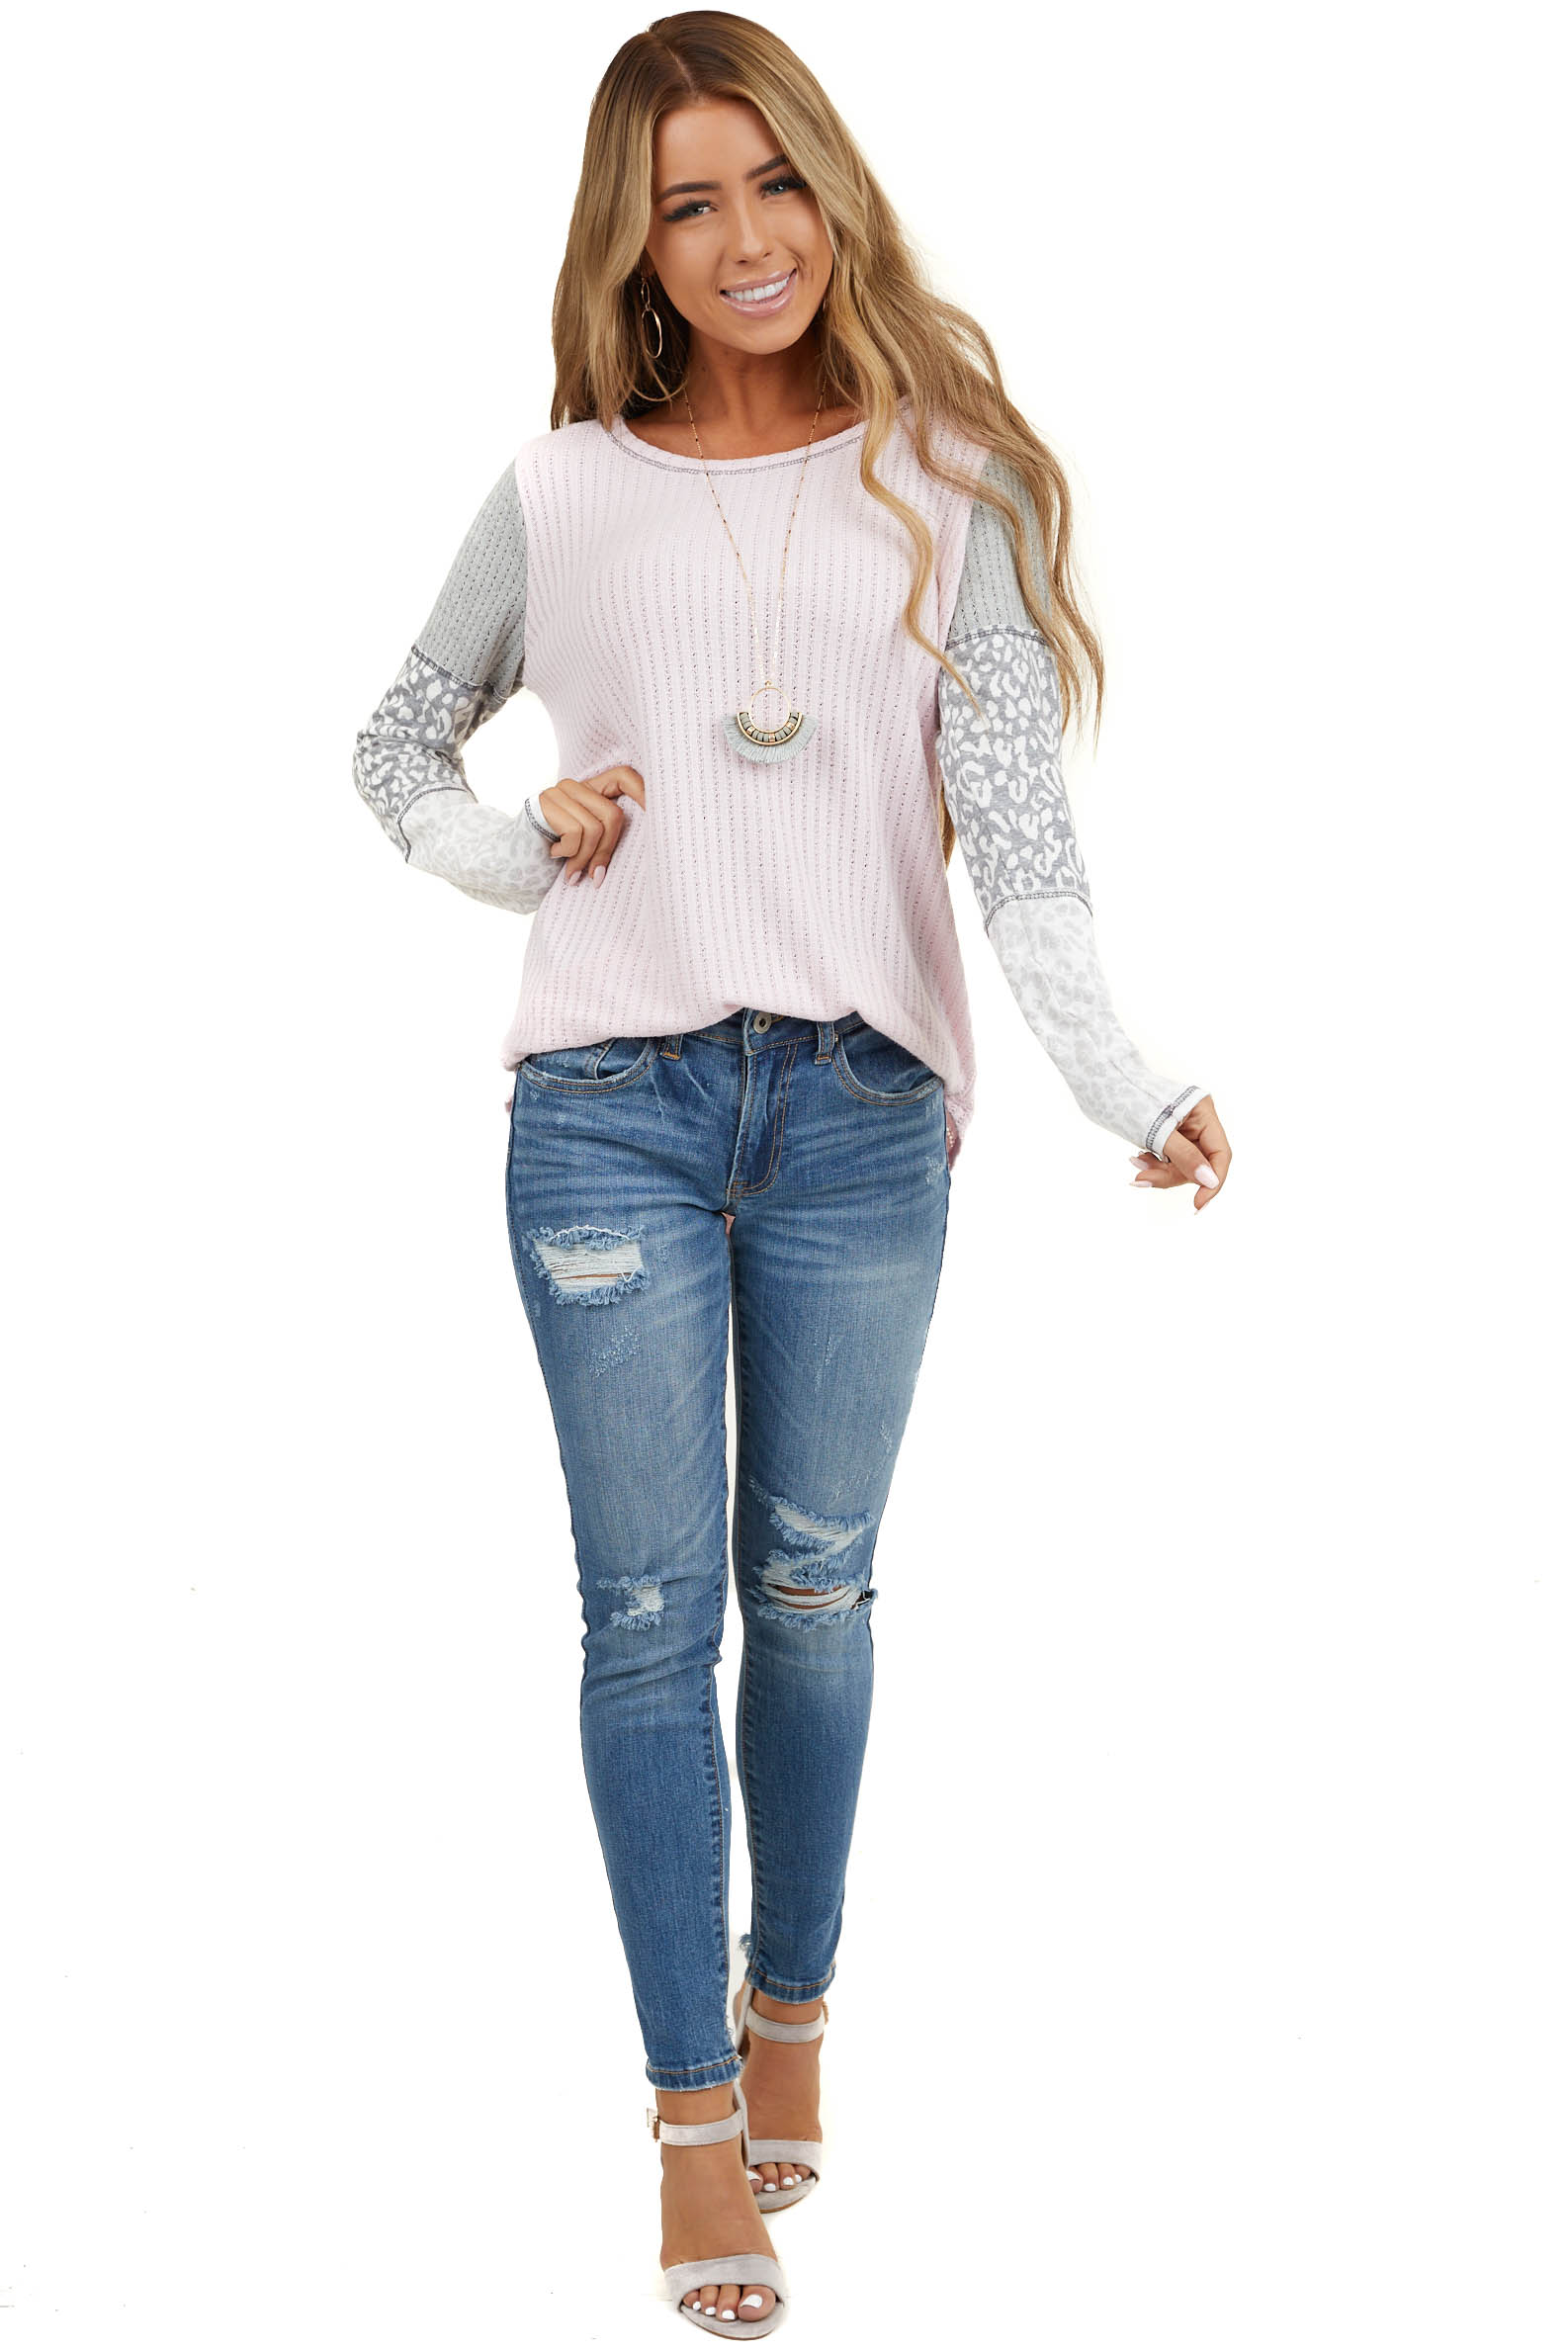 Blush Pink Knit Top with Leopard Print Contrast Sleeves